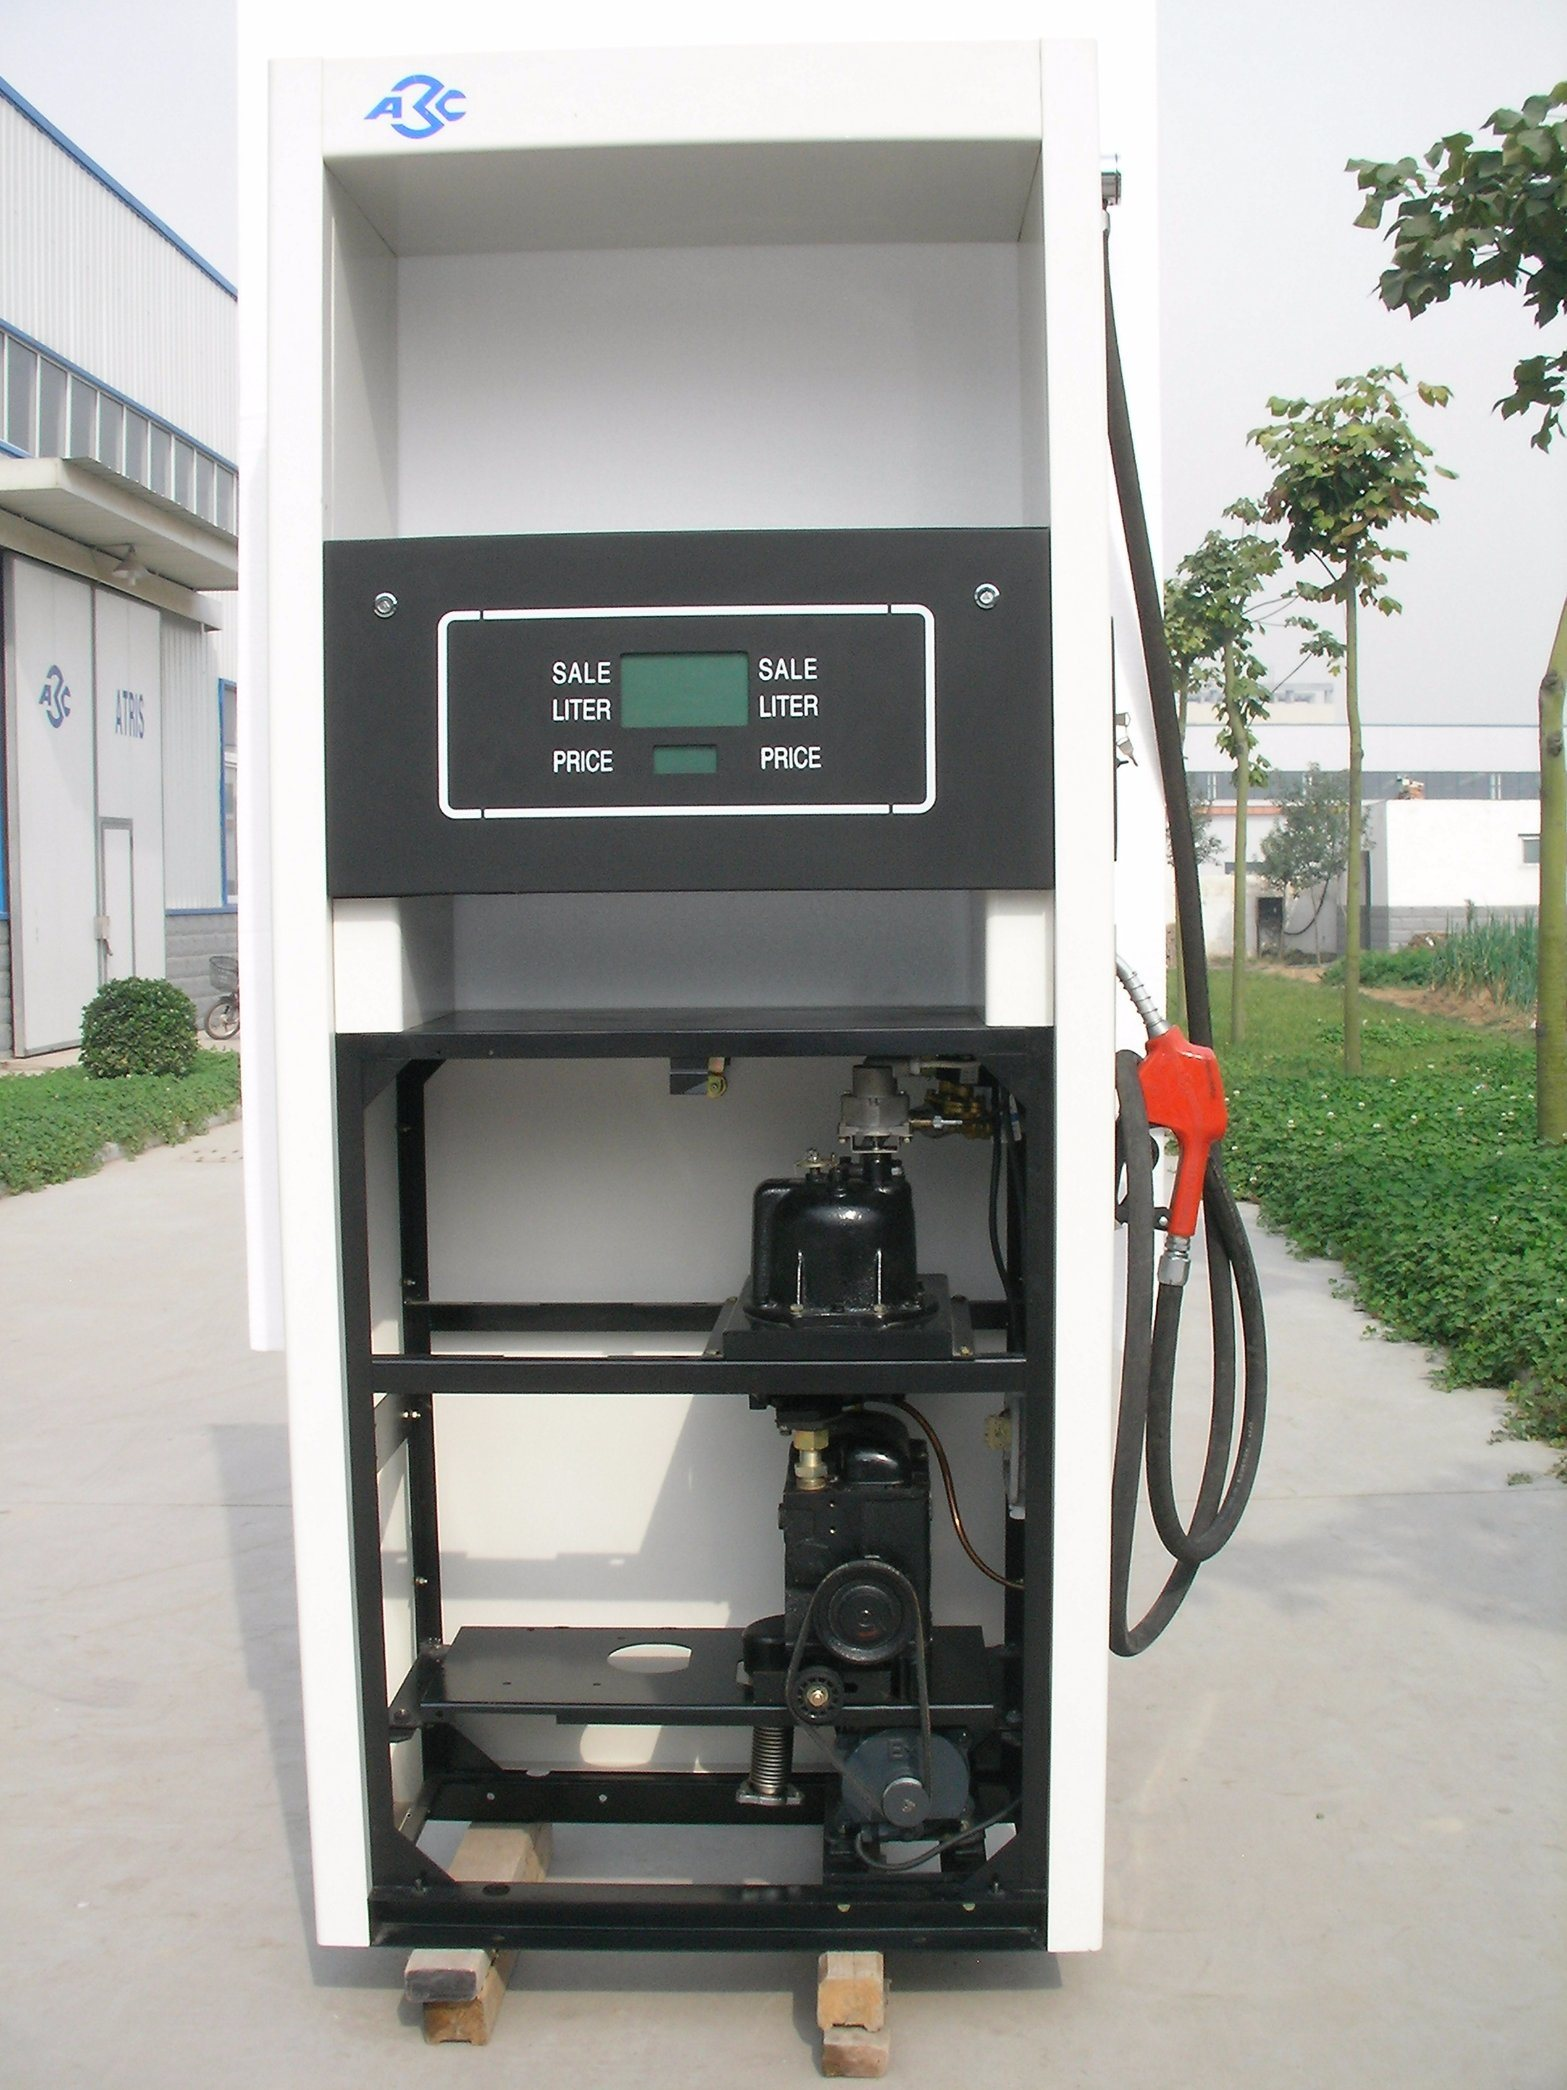 One Nozzle One Pump Oil Station Fuel Dispenser